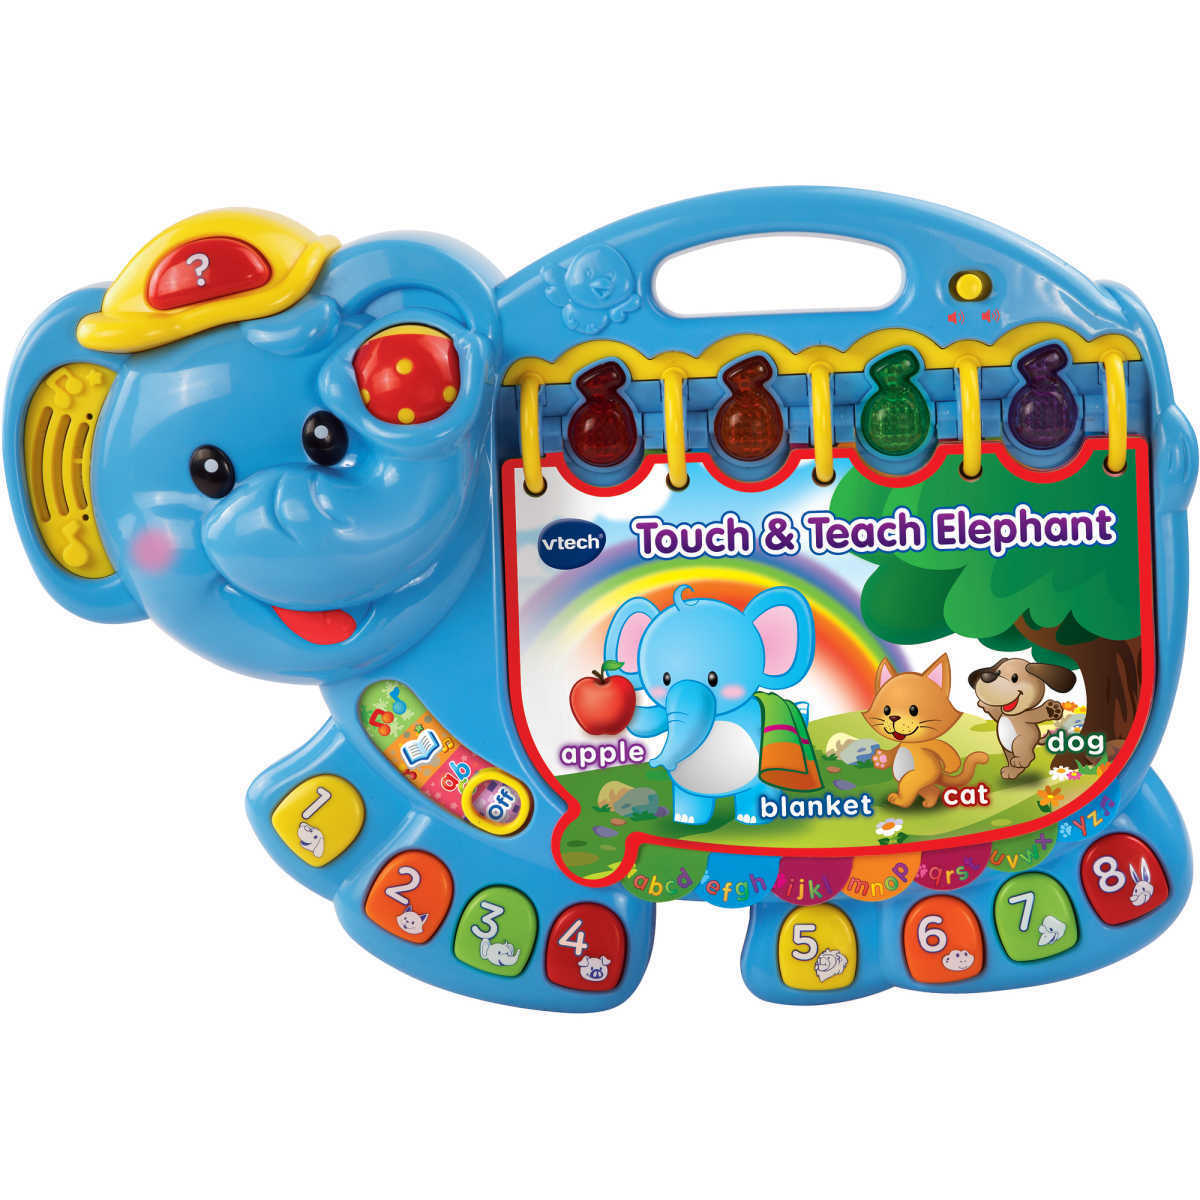 VTech Baby Baby Baby Touch & Teach Elephant First Learning Toy 150+ Songs Birthday Gift 29b96c